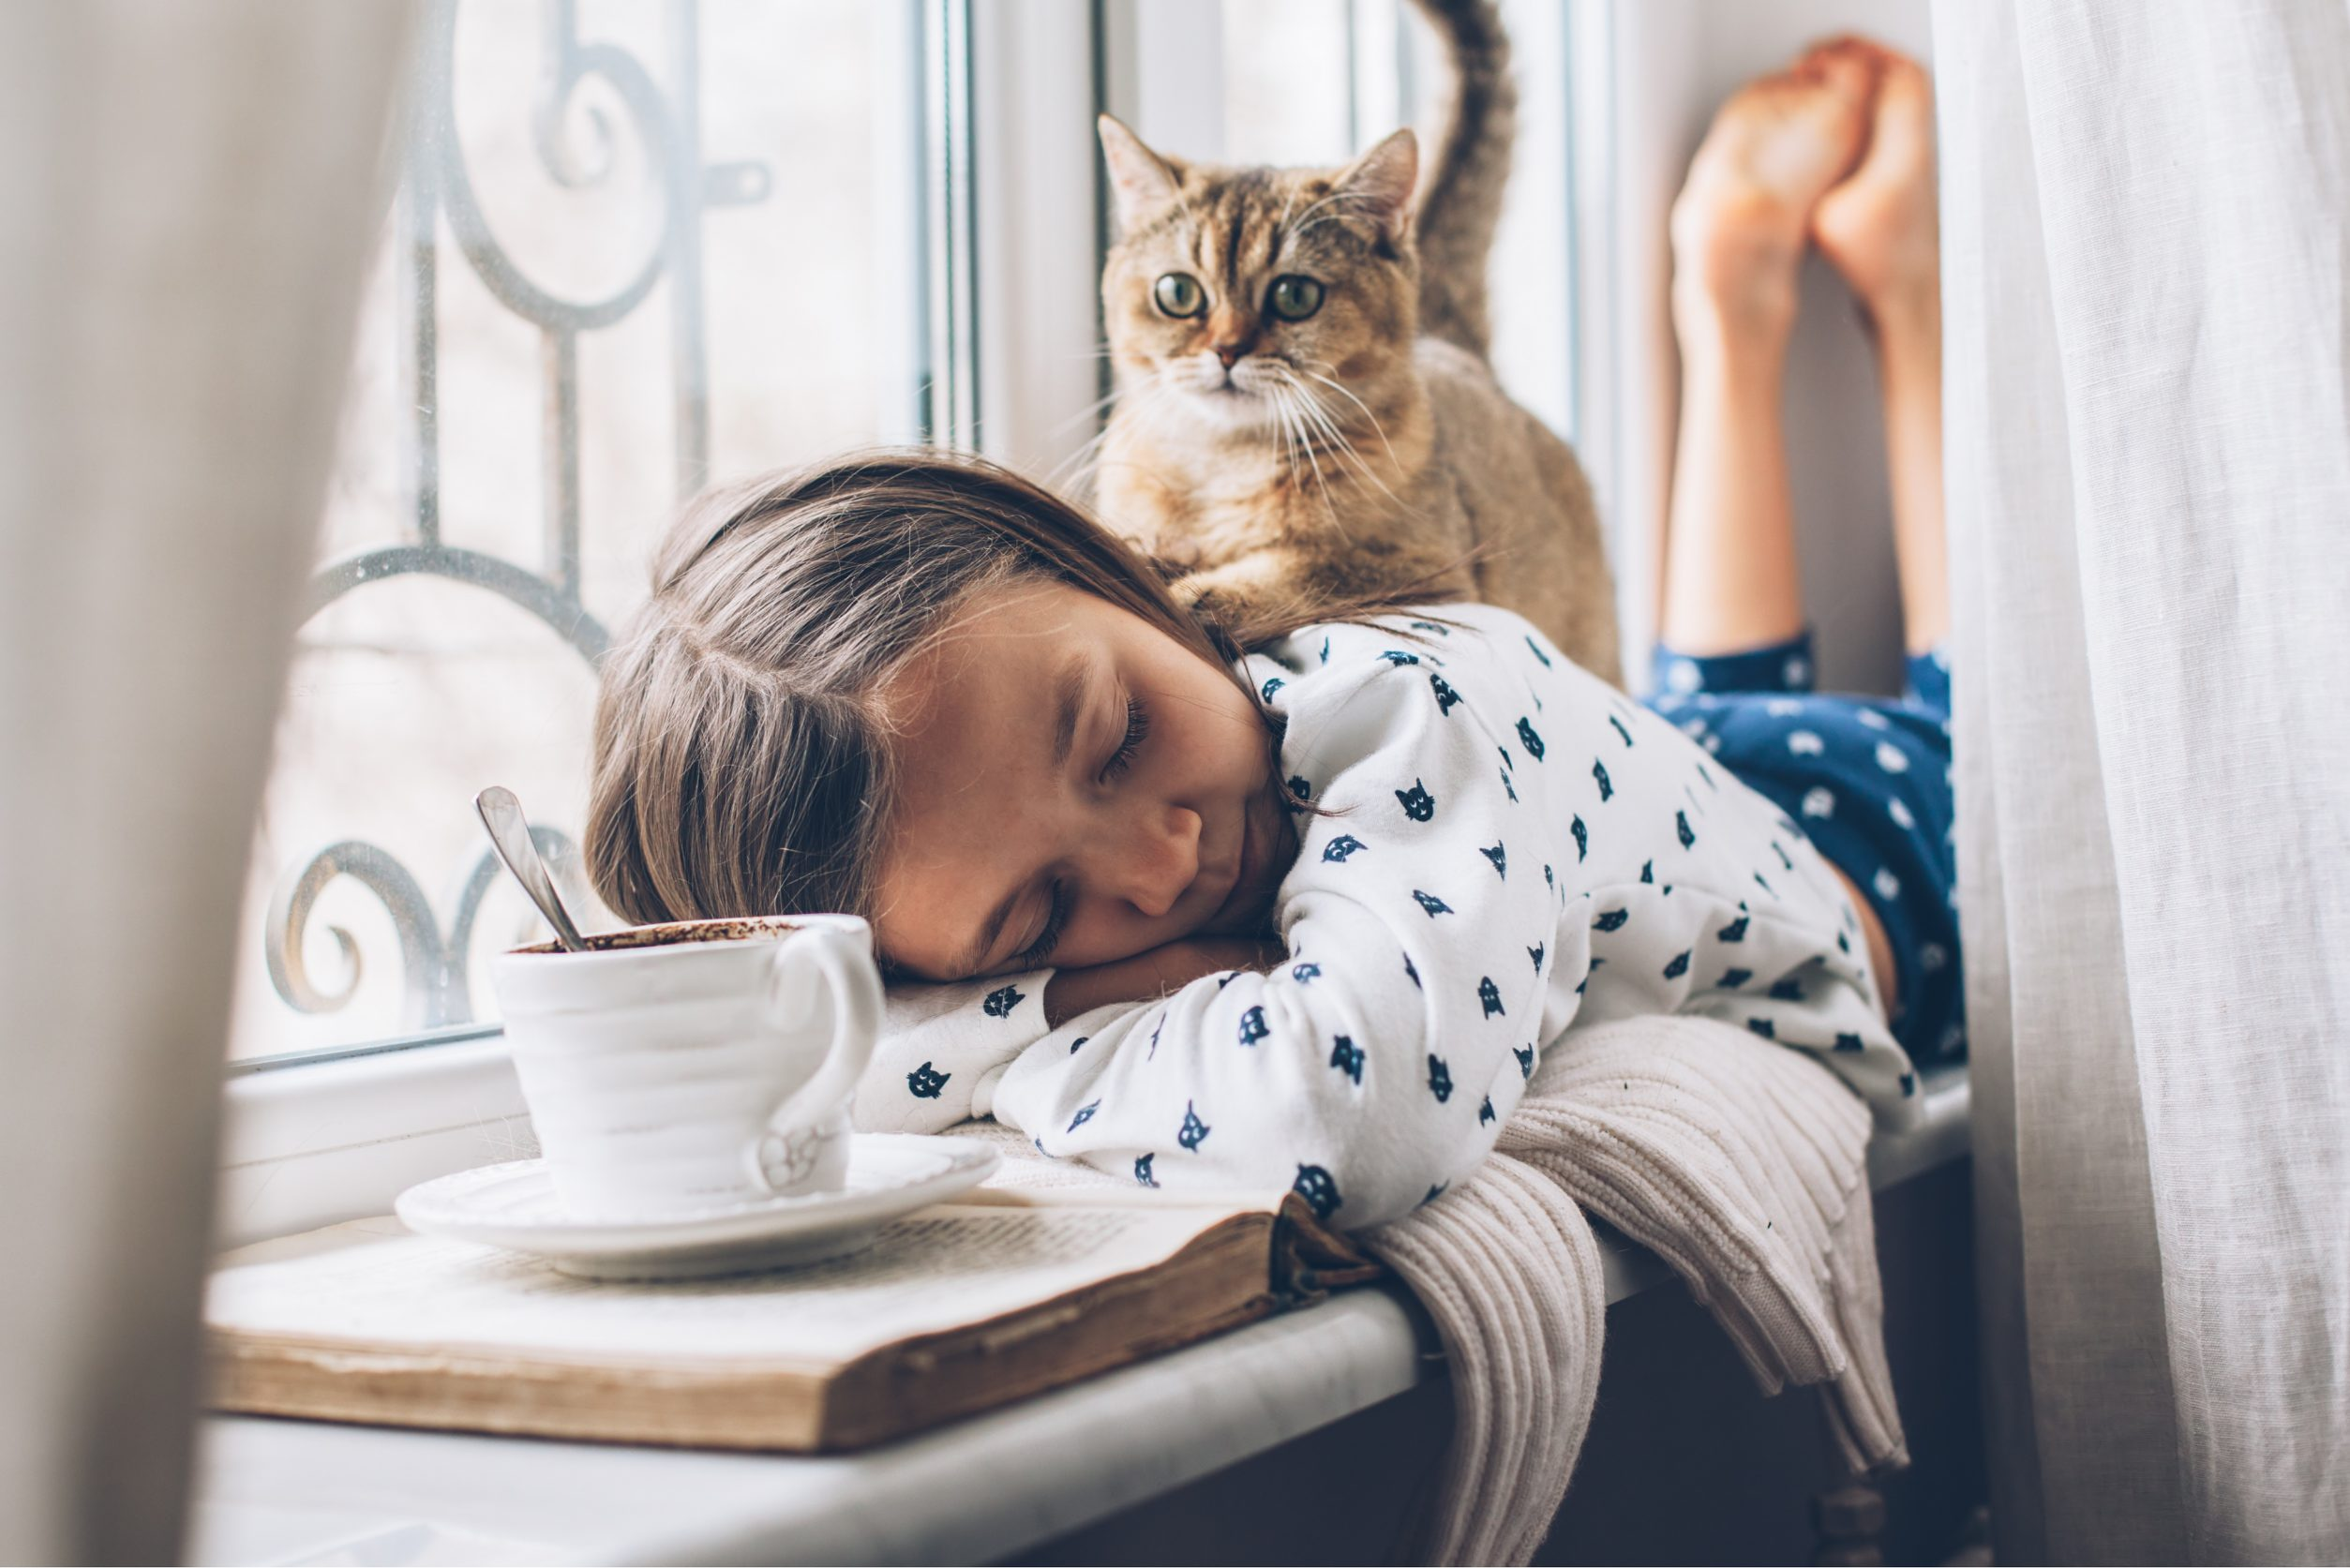 Little girl and cat cuddling making a hygge experience.